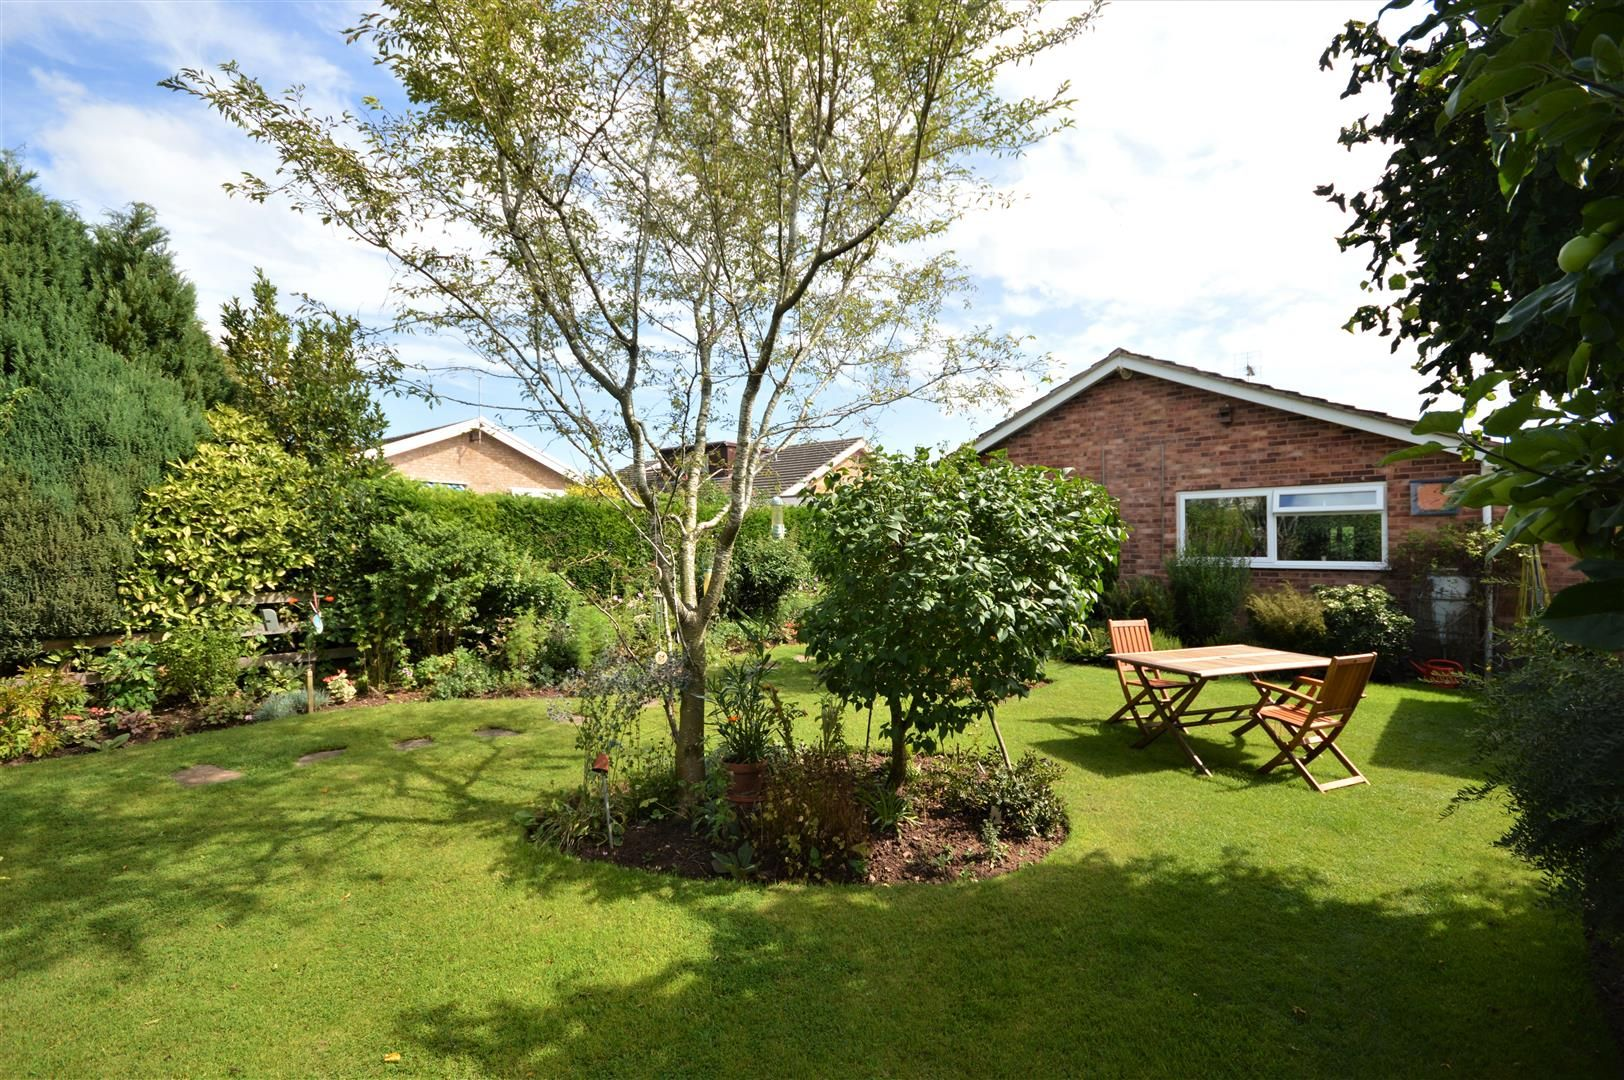 3 bed detached-bungalow for sale in Bodenham 3